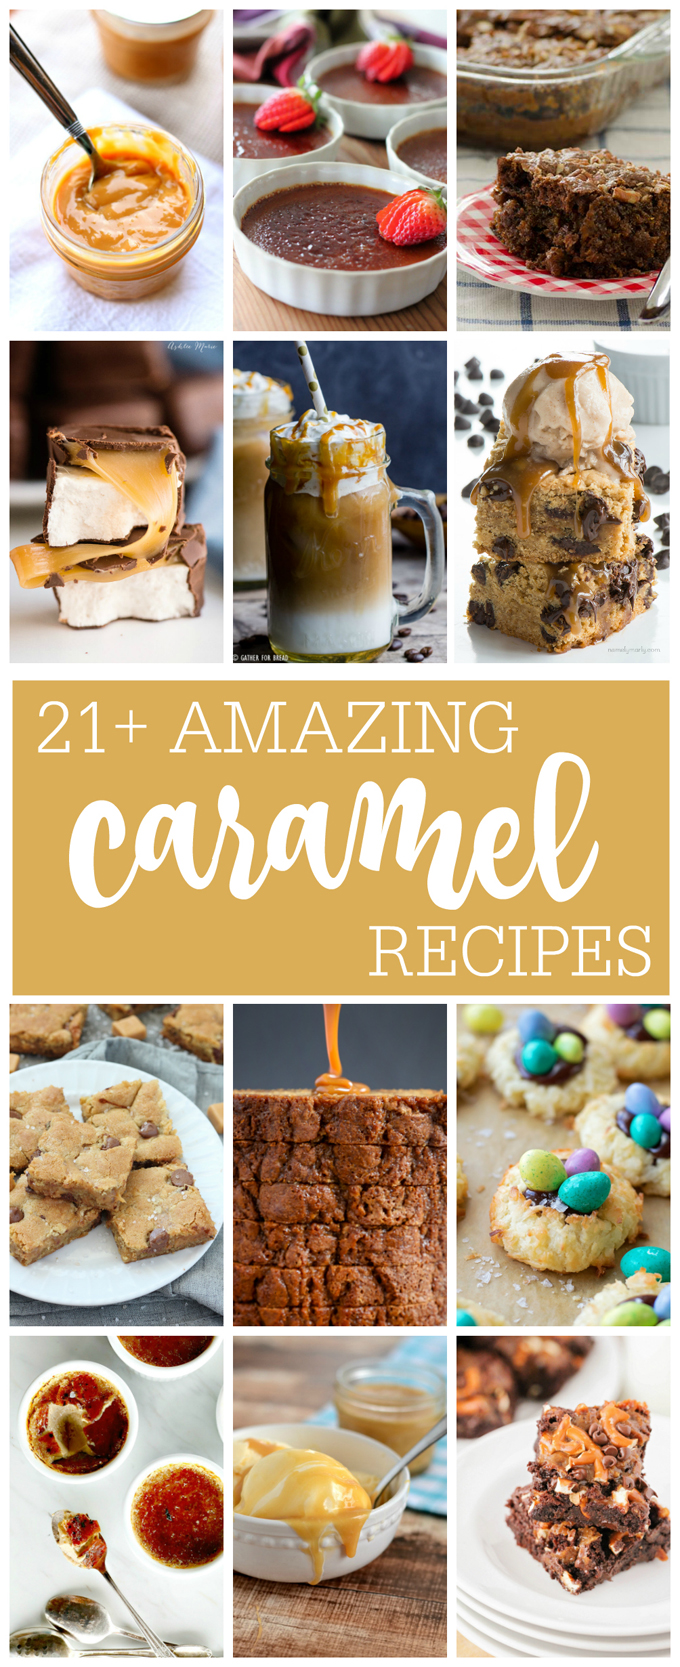 21 Amazing Caramel Recipes | lifemadesimplebakes.com